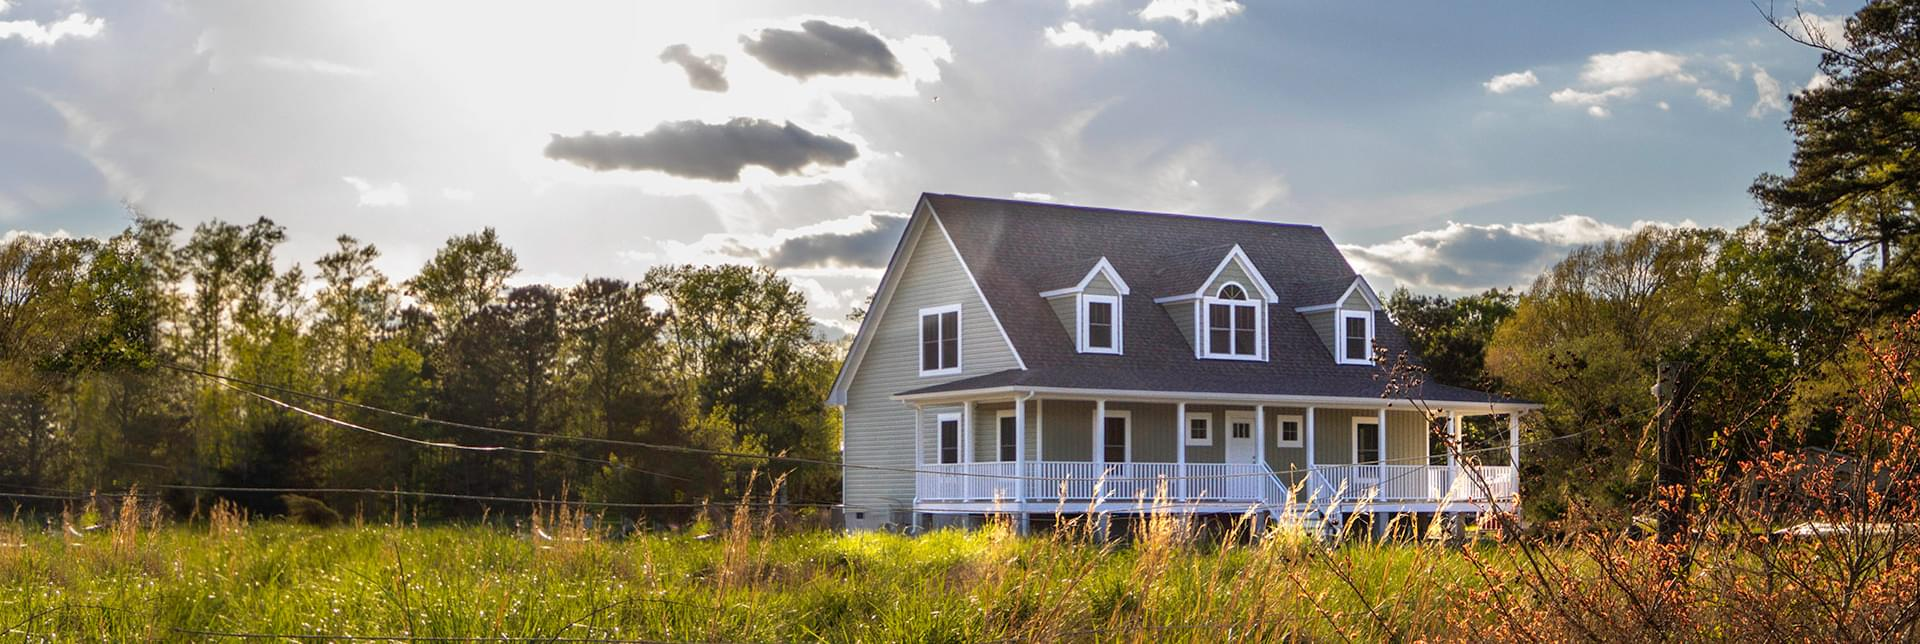 New Homes in Halifax County NC